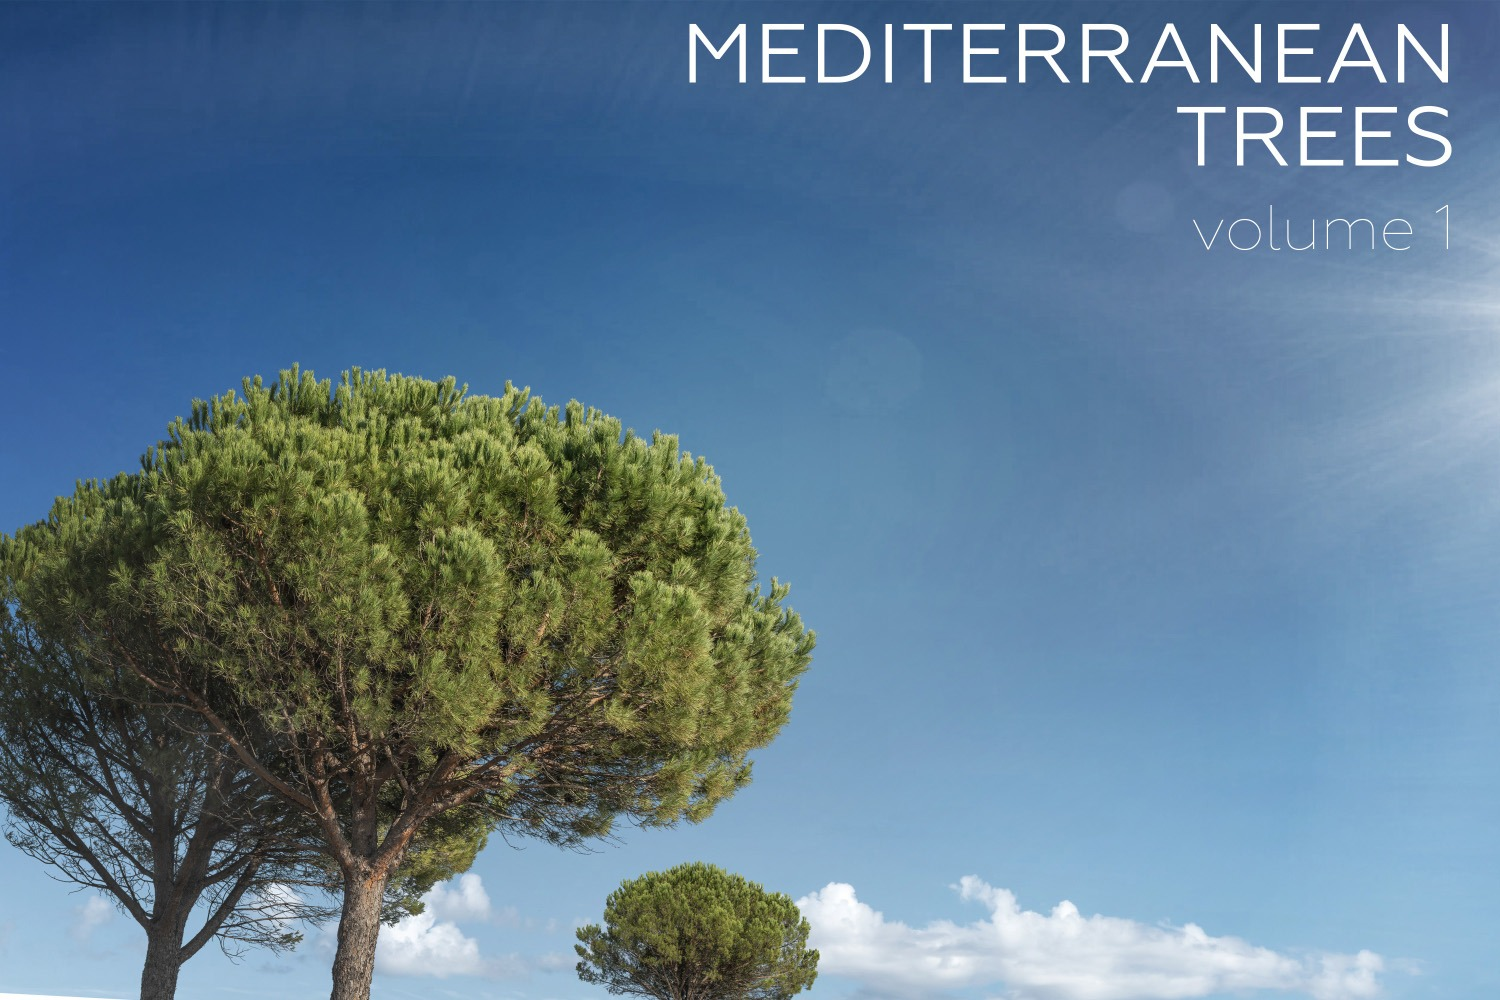 MEDITERRANEAN TREES Volume 01